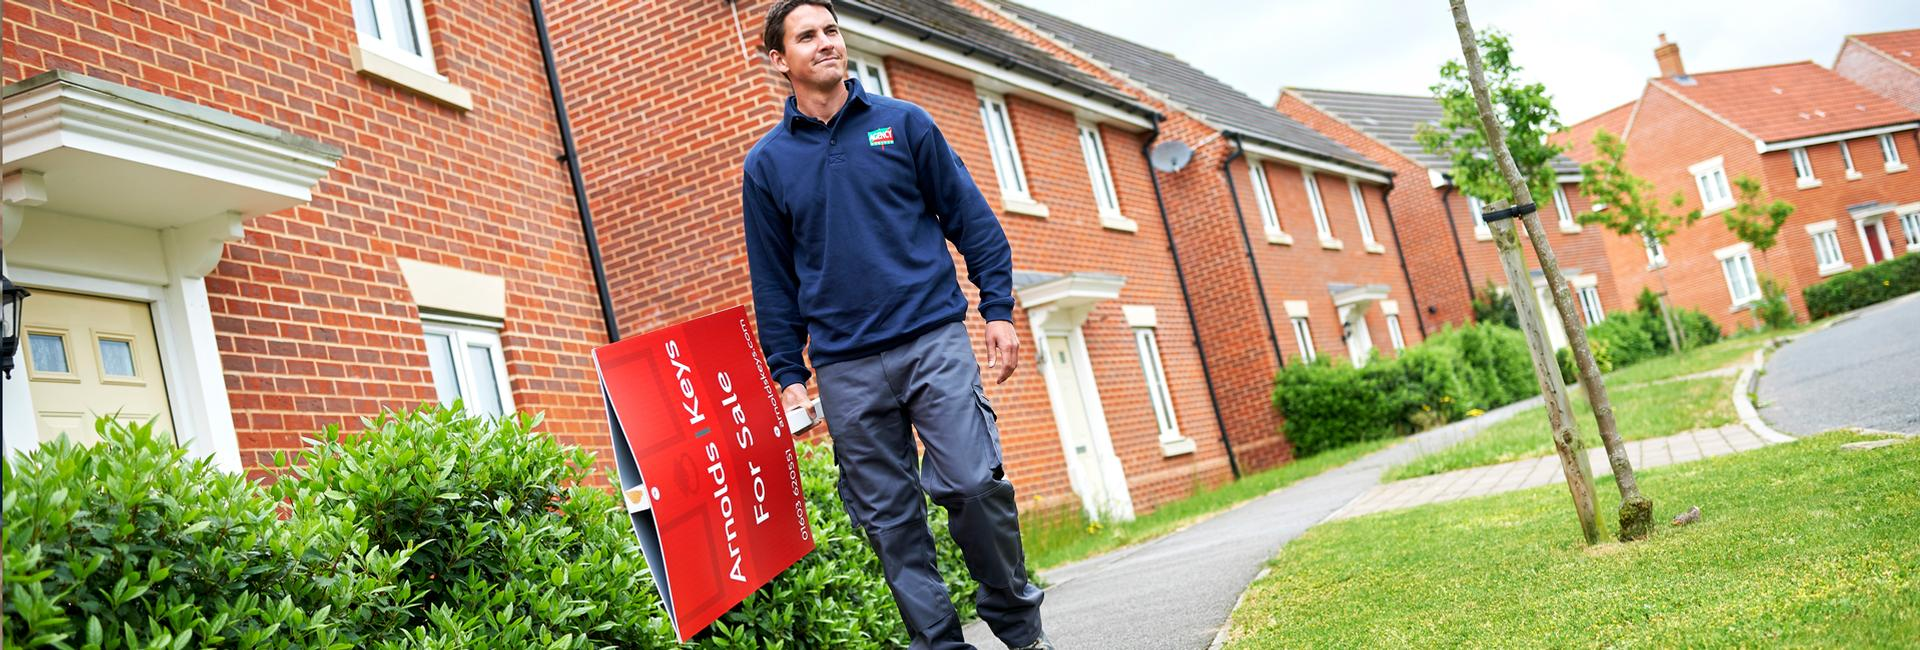 Housing Market Showing Signs of Steady Improvement - Property Activity